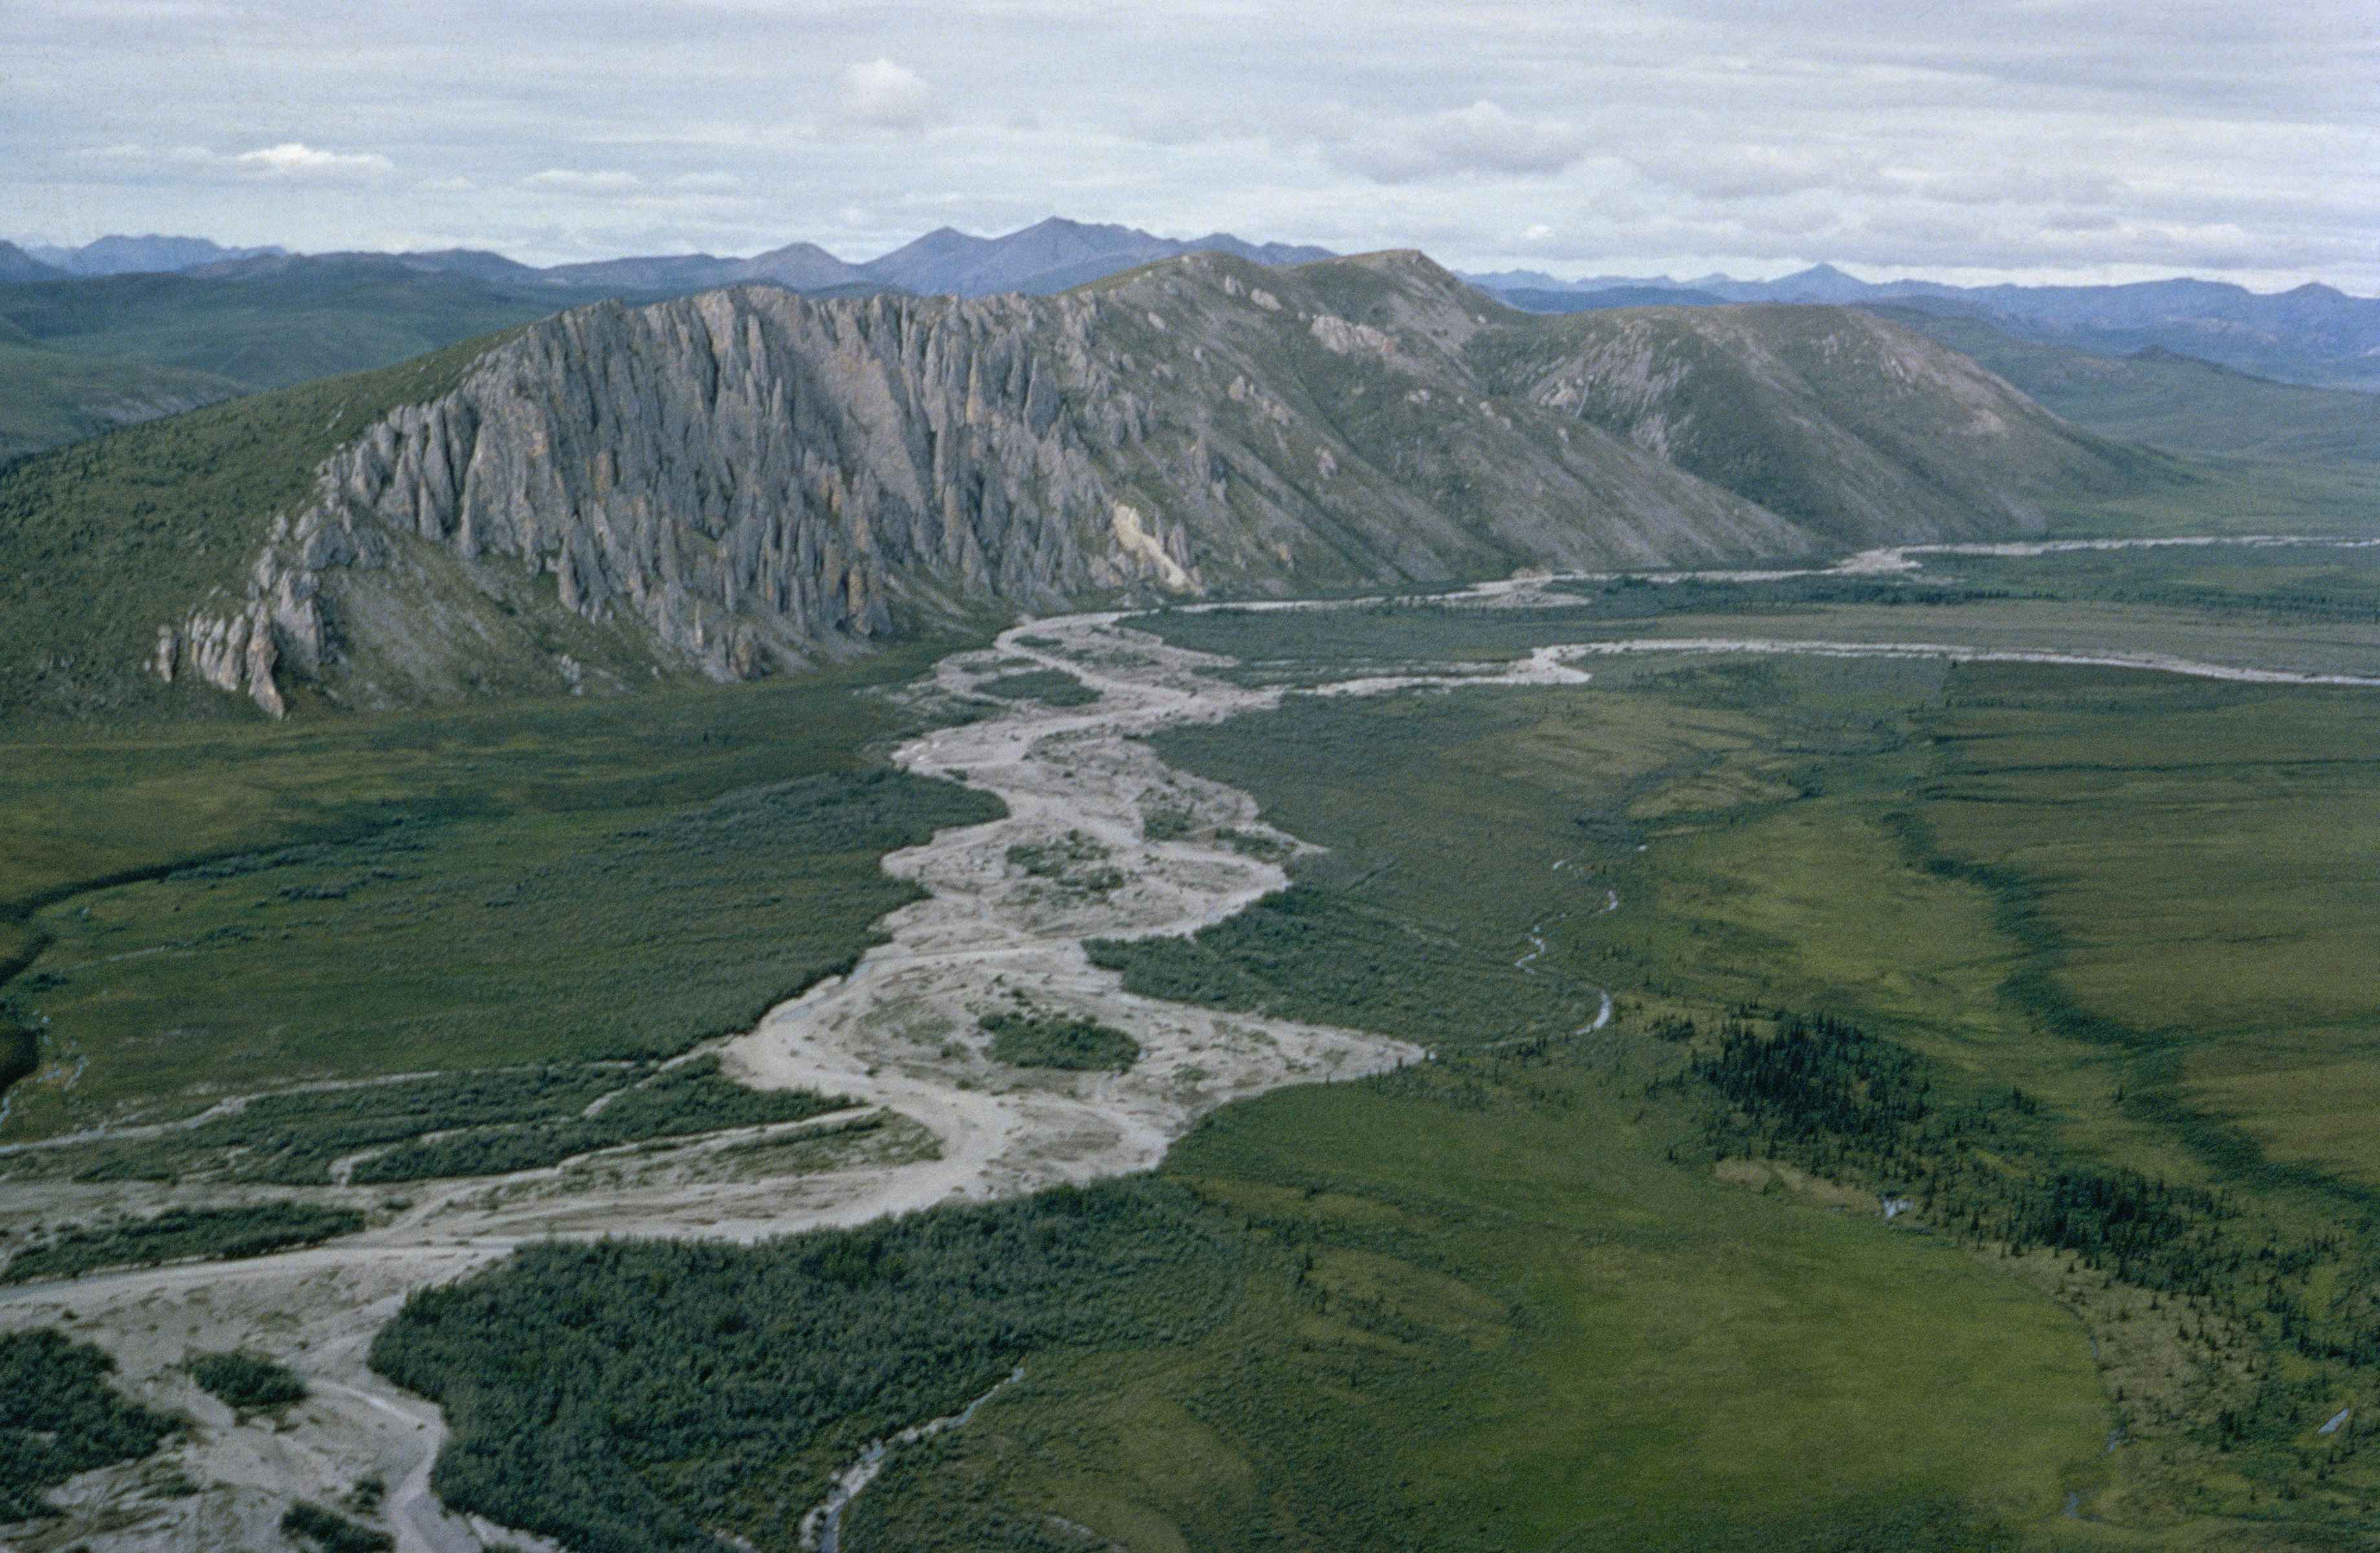 a landscape shot of mountains and a large long river